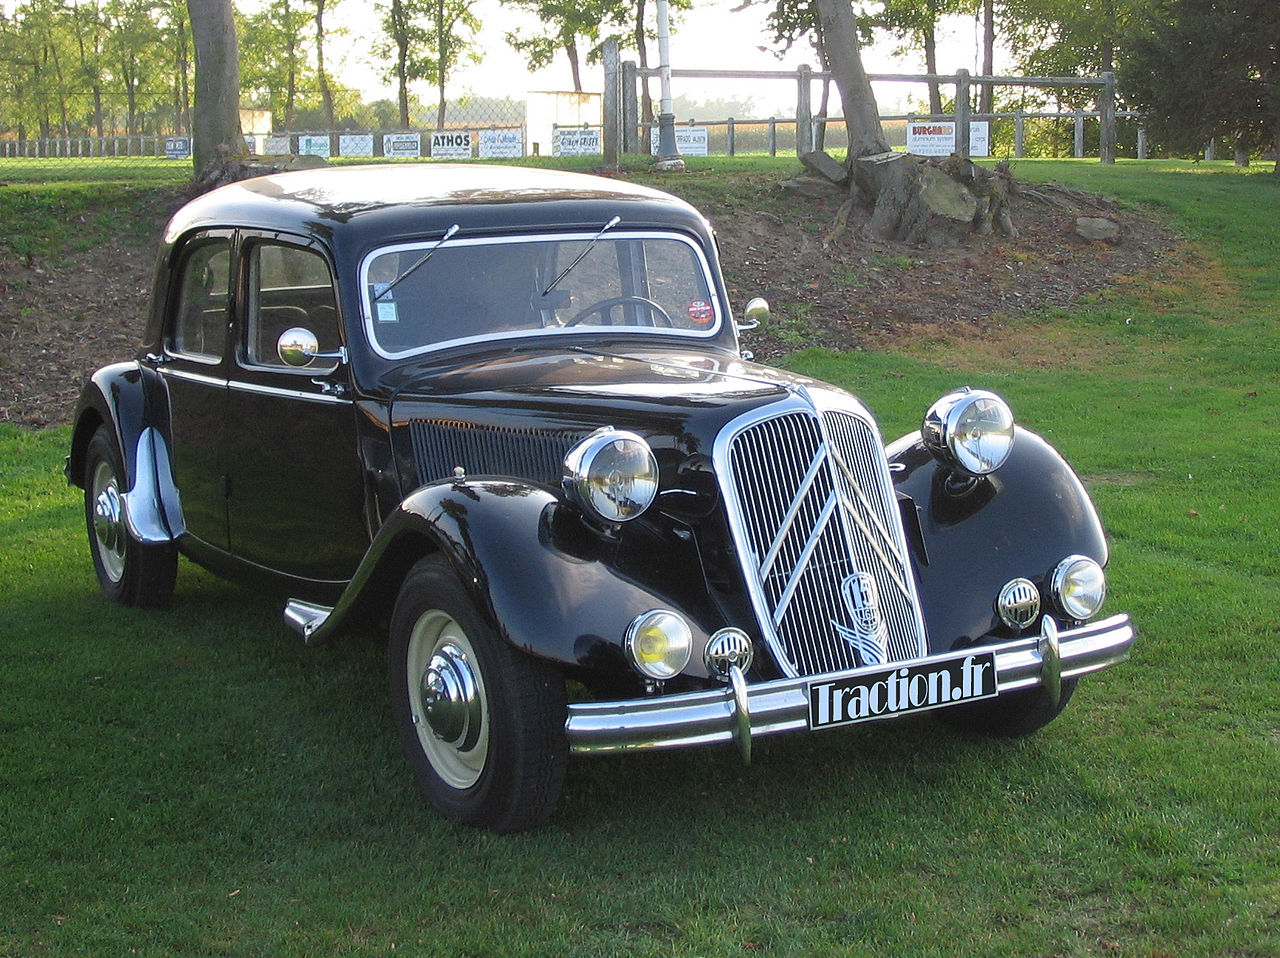 The predecessor of the DS series was the Traction Avant. A beautiful design, but not space age.